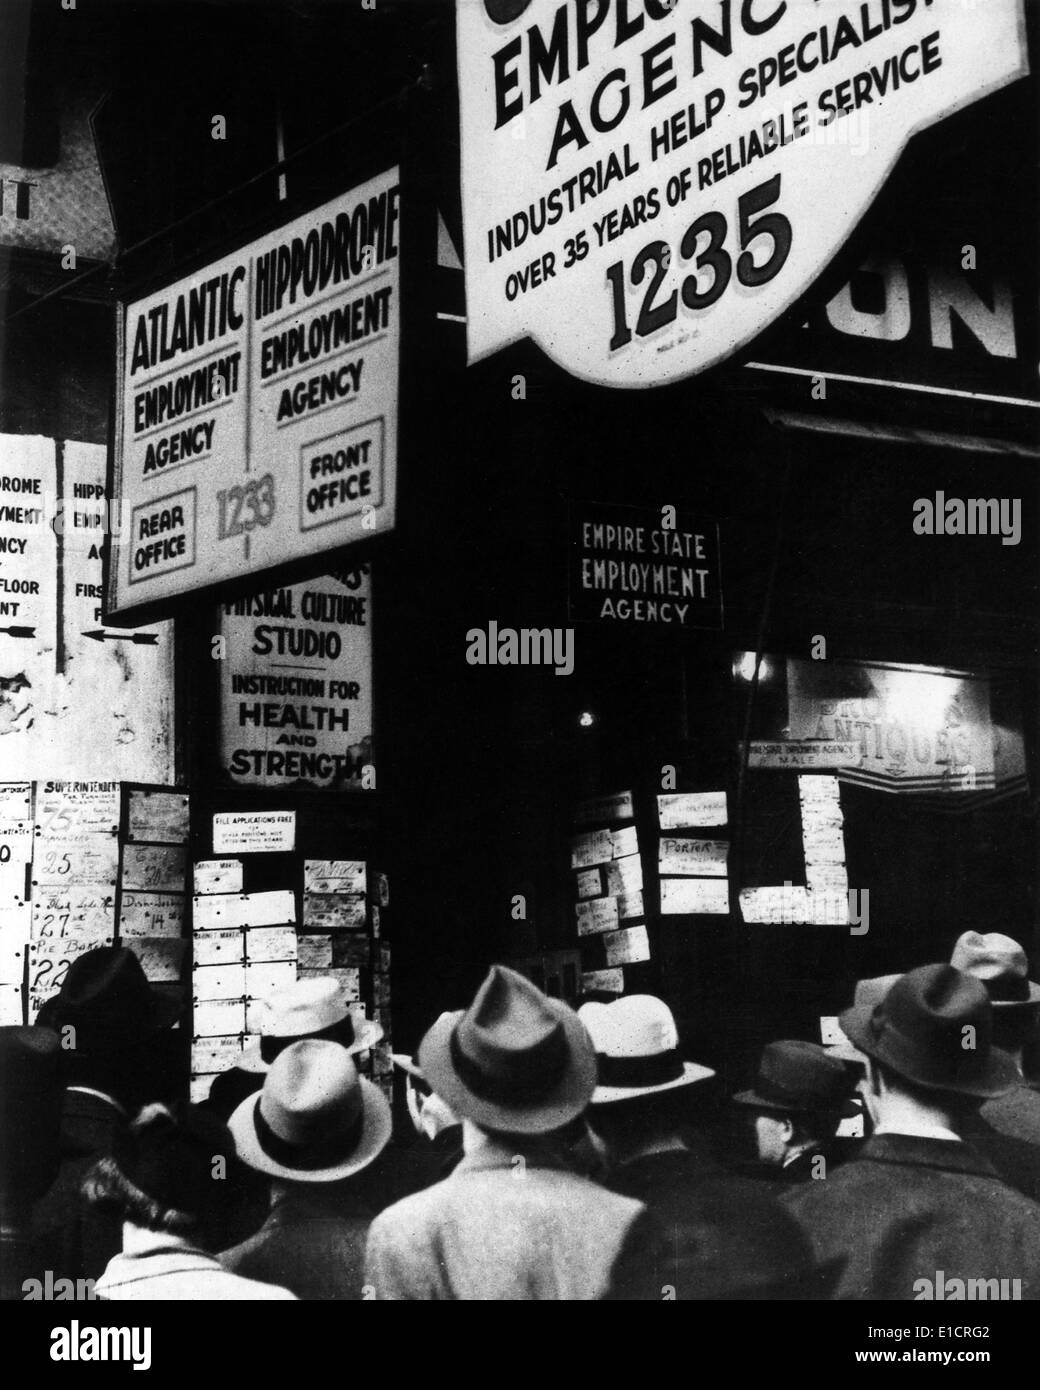 The Great Depression. Unemployed men crowd around the listings at a job board. 1930s - Stock Image